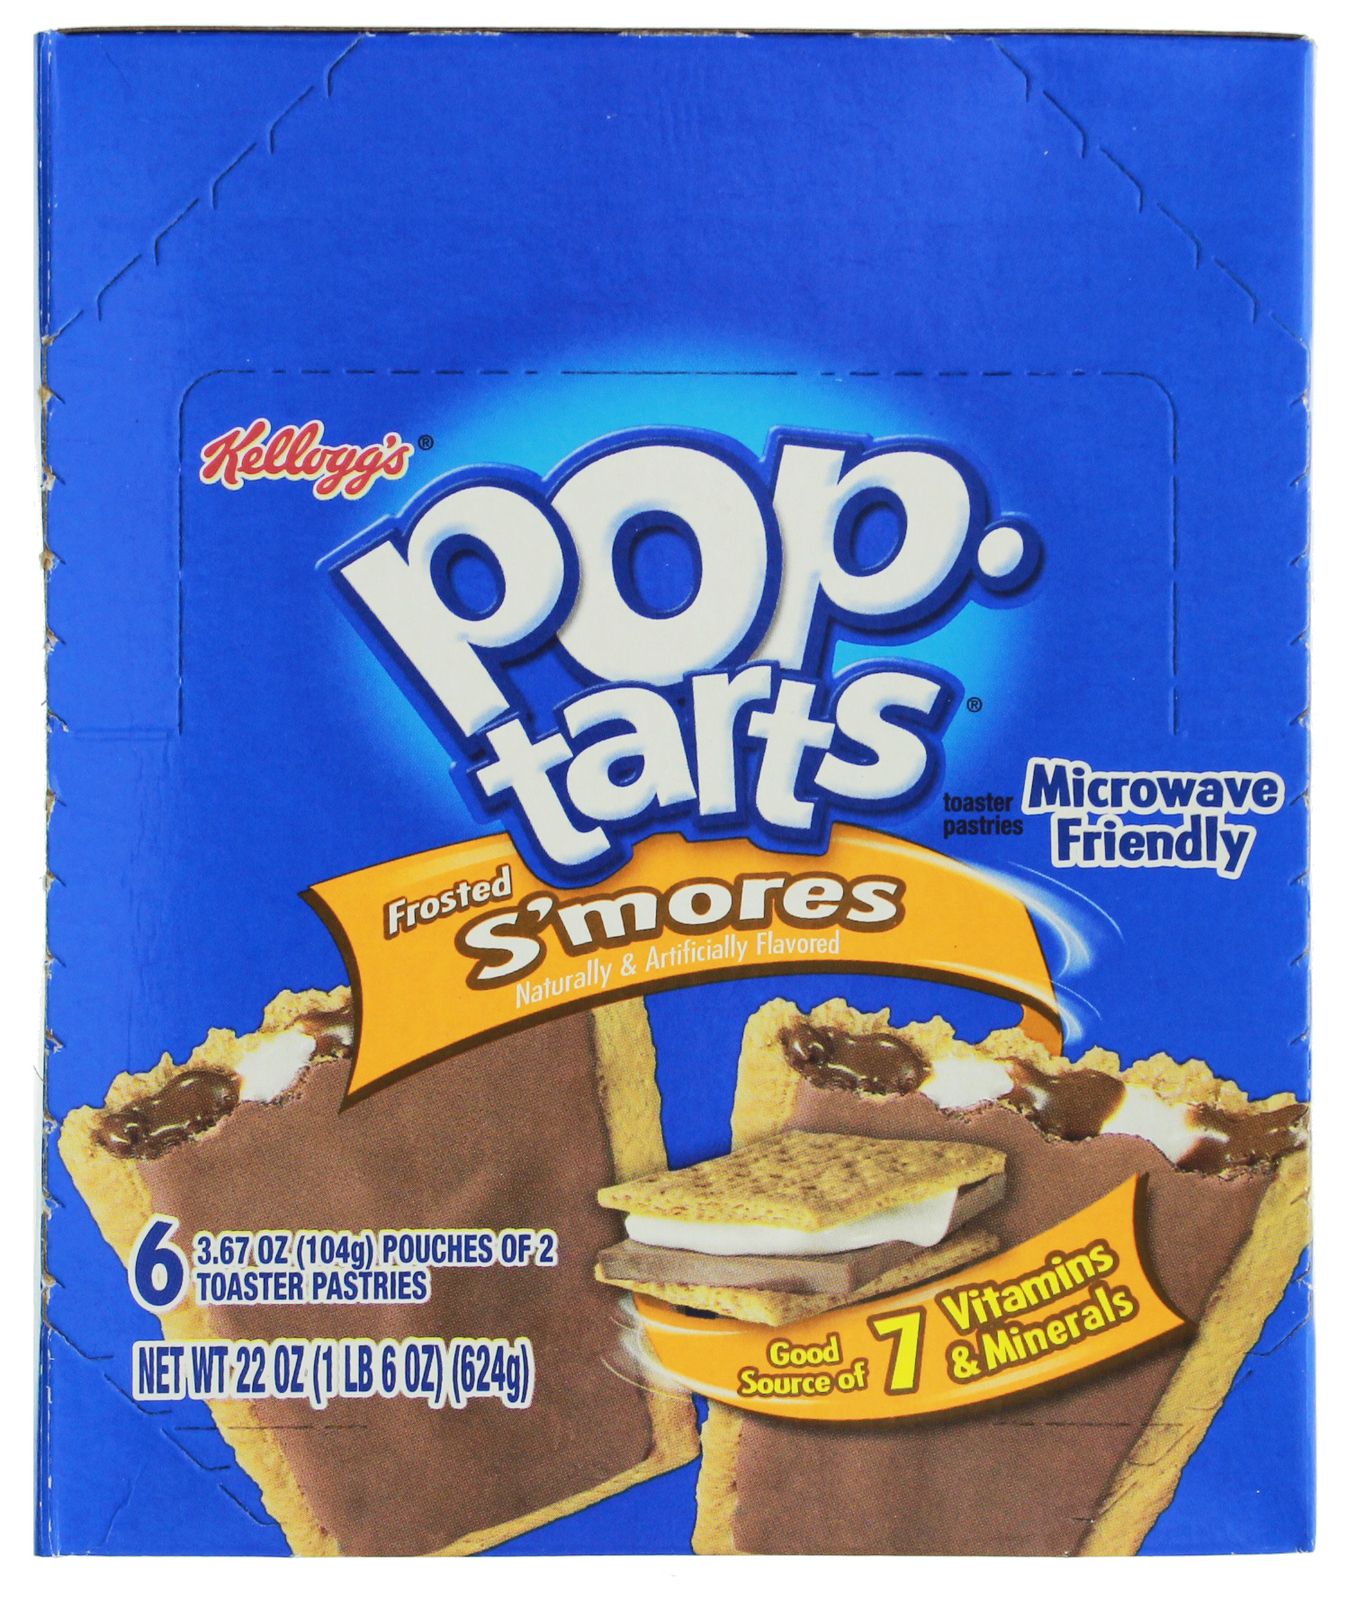 Kellogg's Pop Tarts - Frosted S'mores image